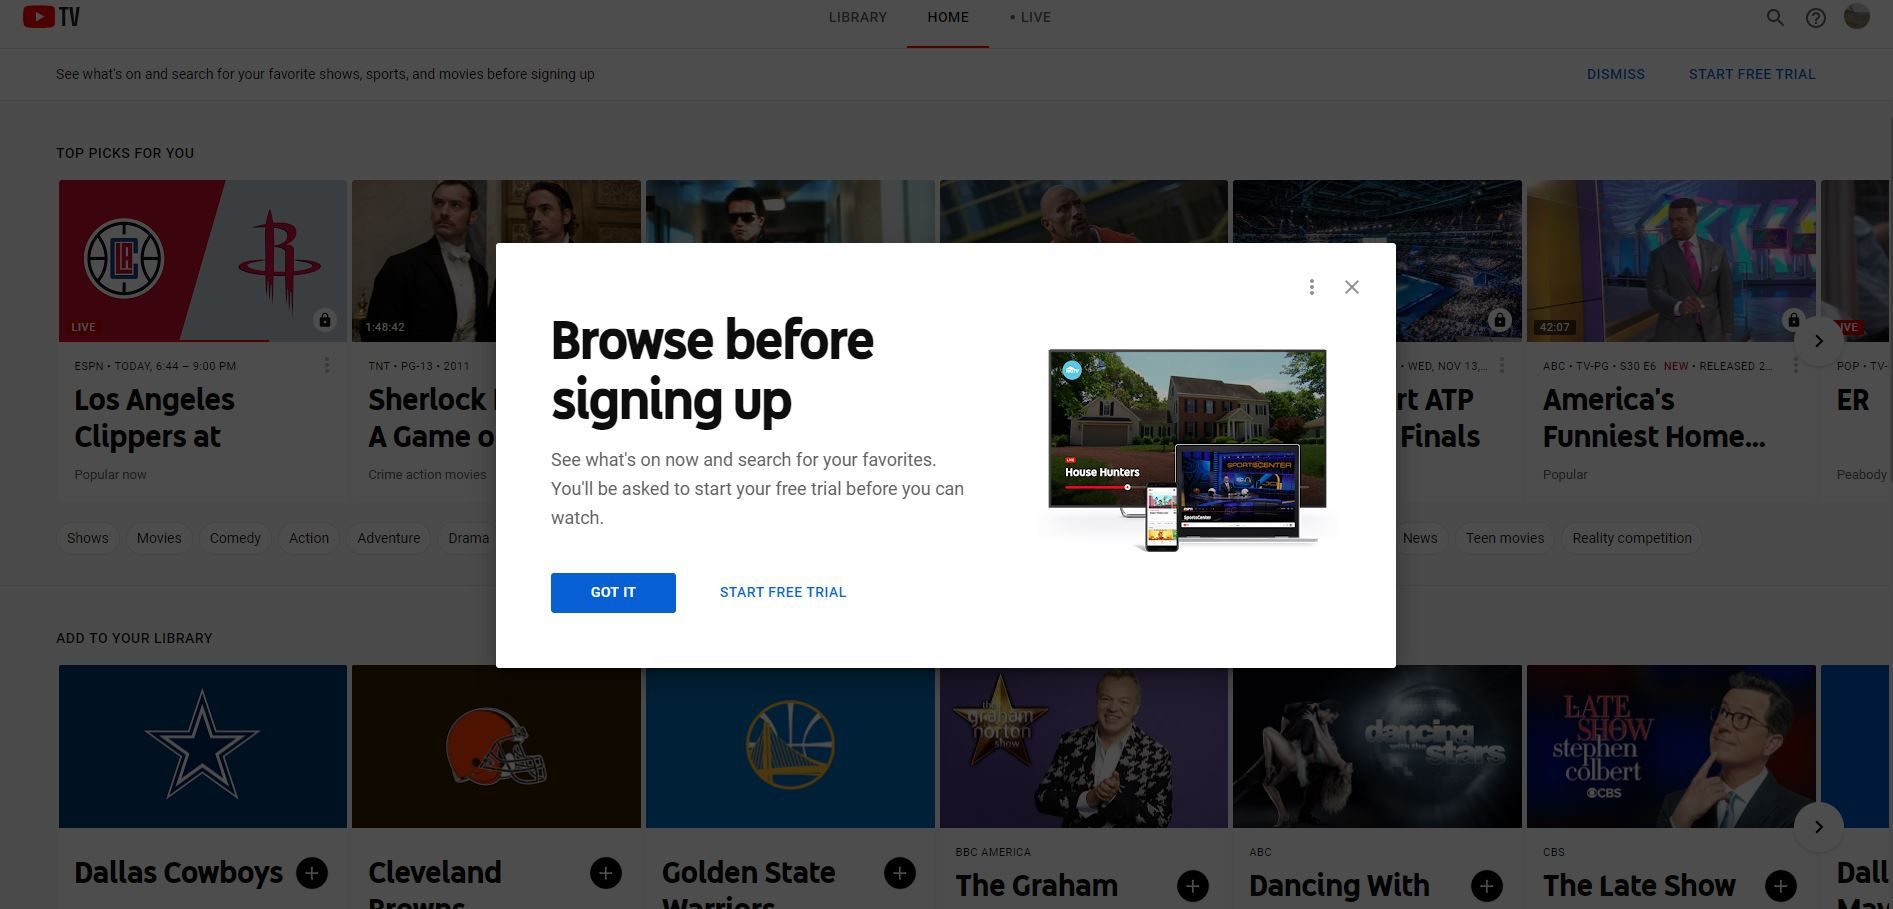 Browse before signing up screen in YouTube TV signup